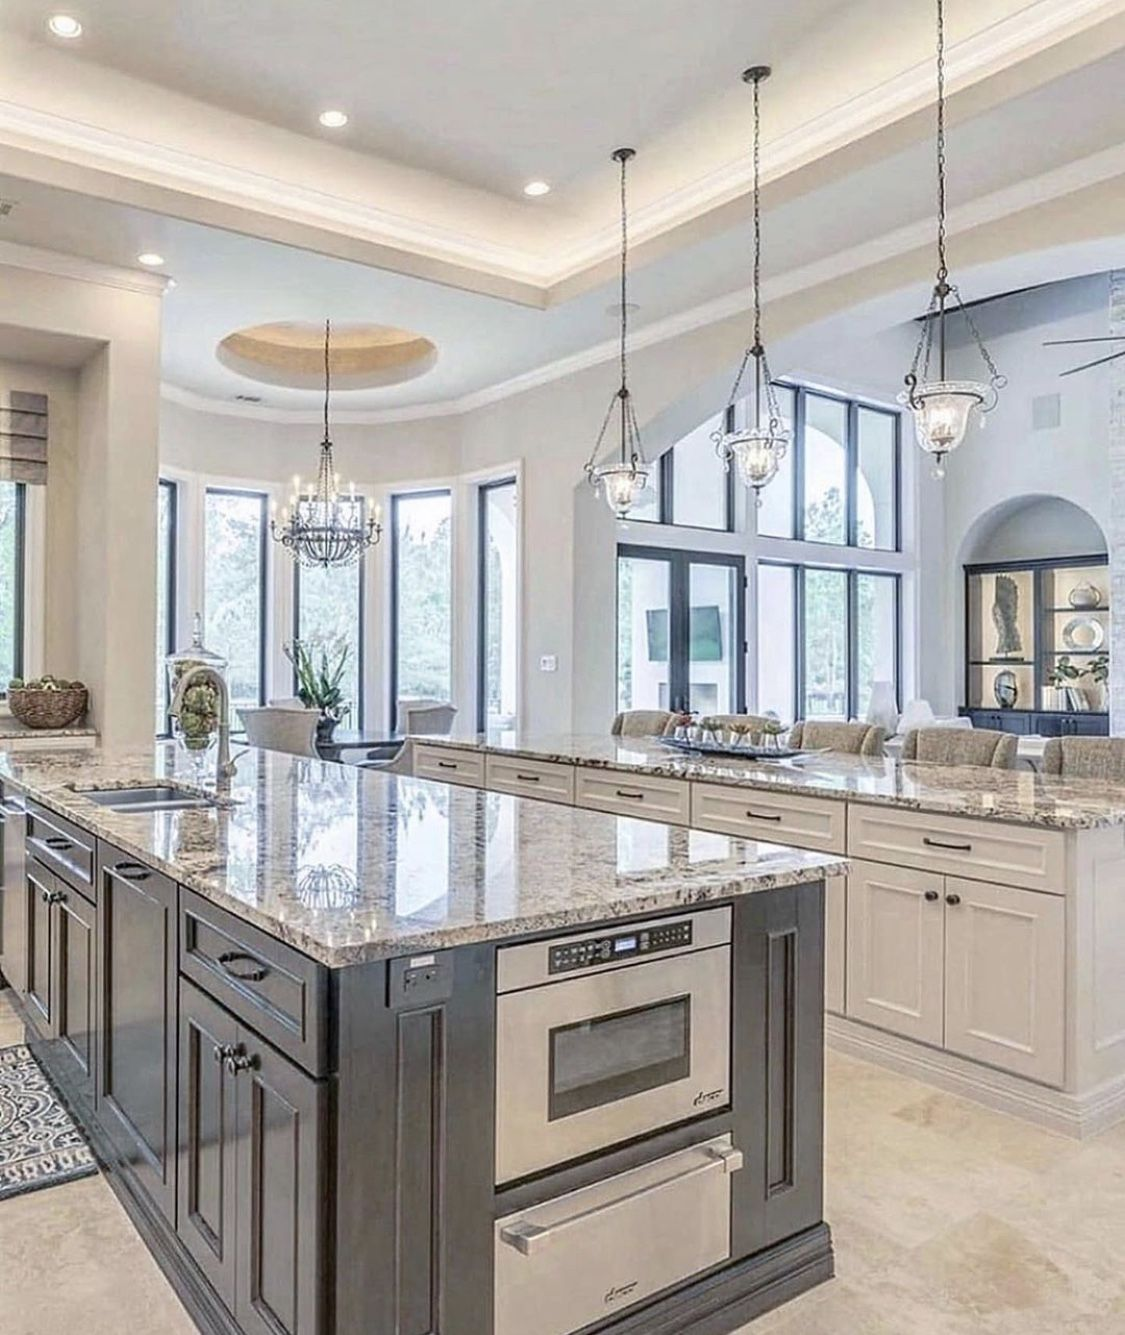 Pin By Kris Jans On Home Decor In 2020 Luxury Kitchen Design Dream Kitchens Design Luxury Kitchens